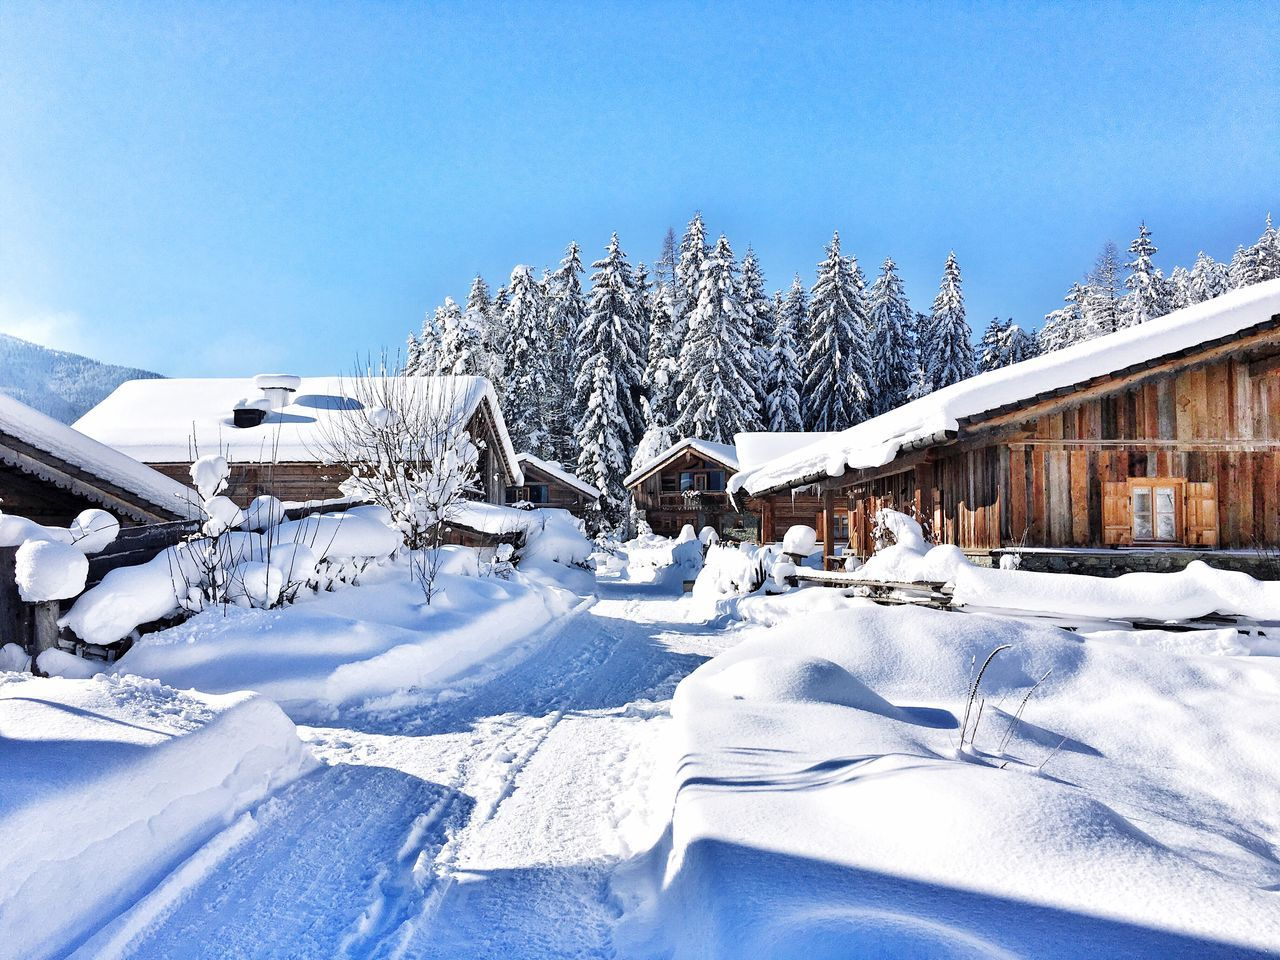 Snow Winter Cold Temperature Weather Day House Outdoors Built Structure No People Building Exterior Architecture Nature Sky Idyllic Cosy Chalet Cottage Winter Wonderland